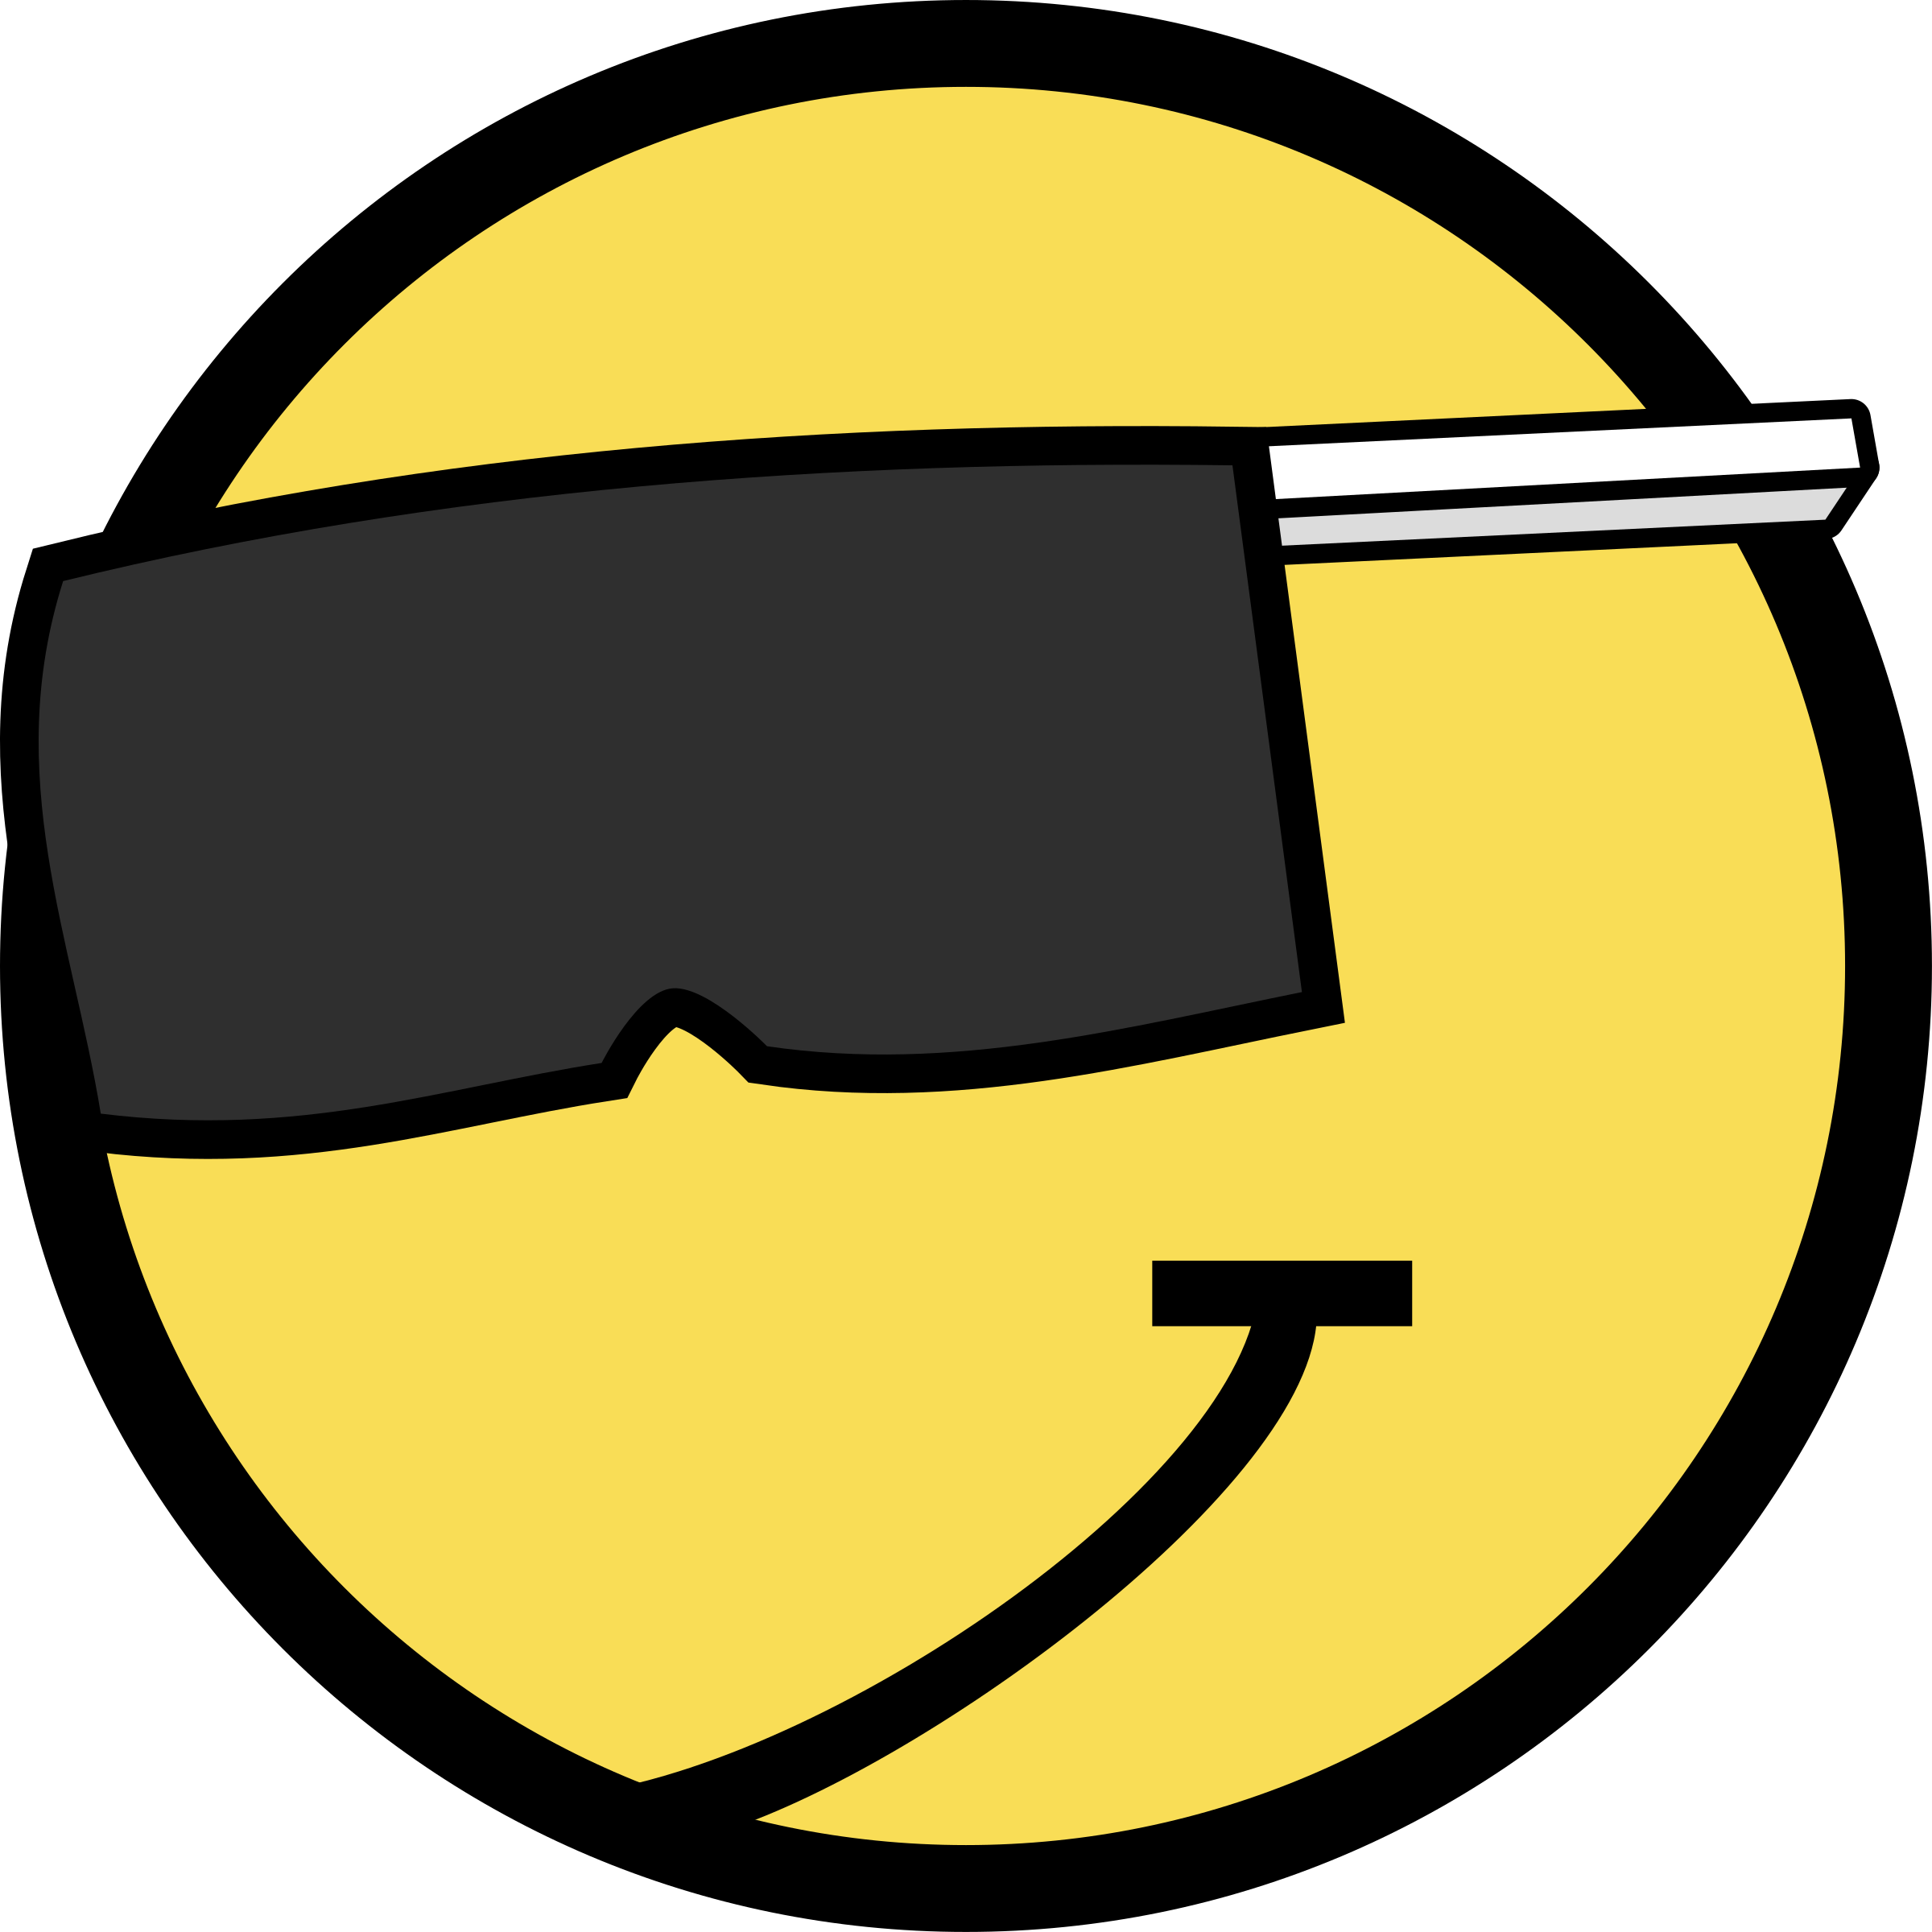 Clipart Cool Smiley